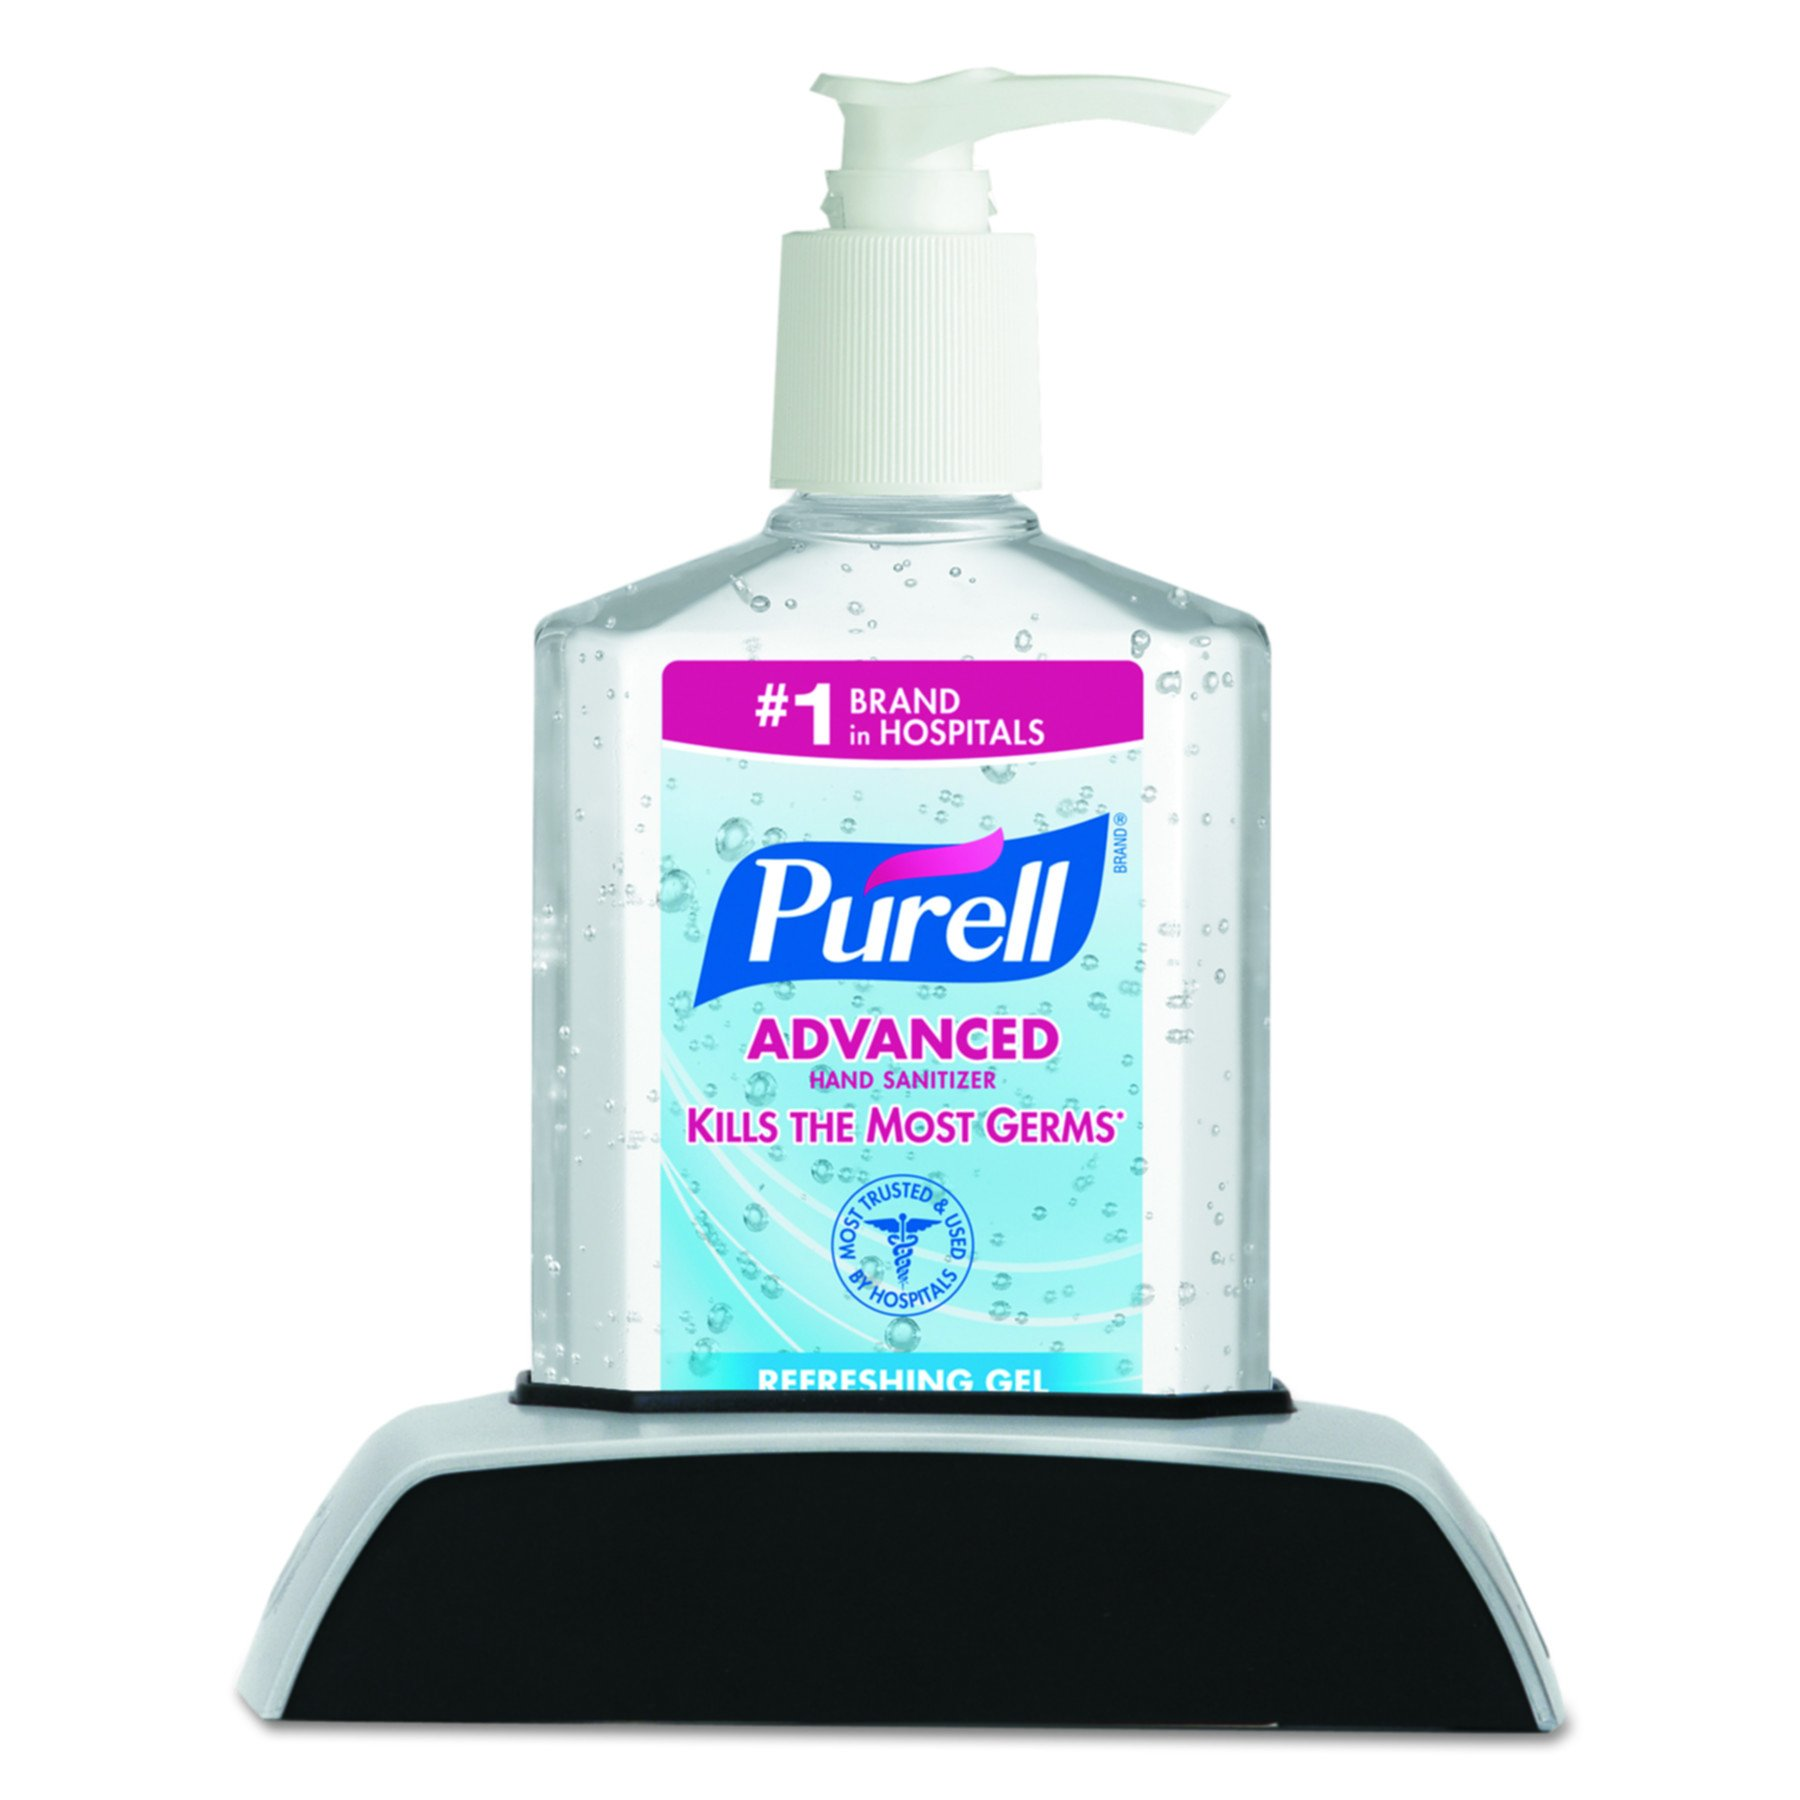 PURELL Advanced Hand Sanitizer Gel with PURELL CLASSIC HOLDER Caddy, 1 – 8 fl oz Sanitizer Counter Top Pump Bottle + 1 – PURELL CLASSIC HOLDER Caddy (Case of 12) – 9614-12